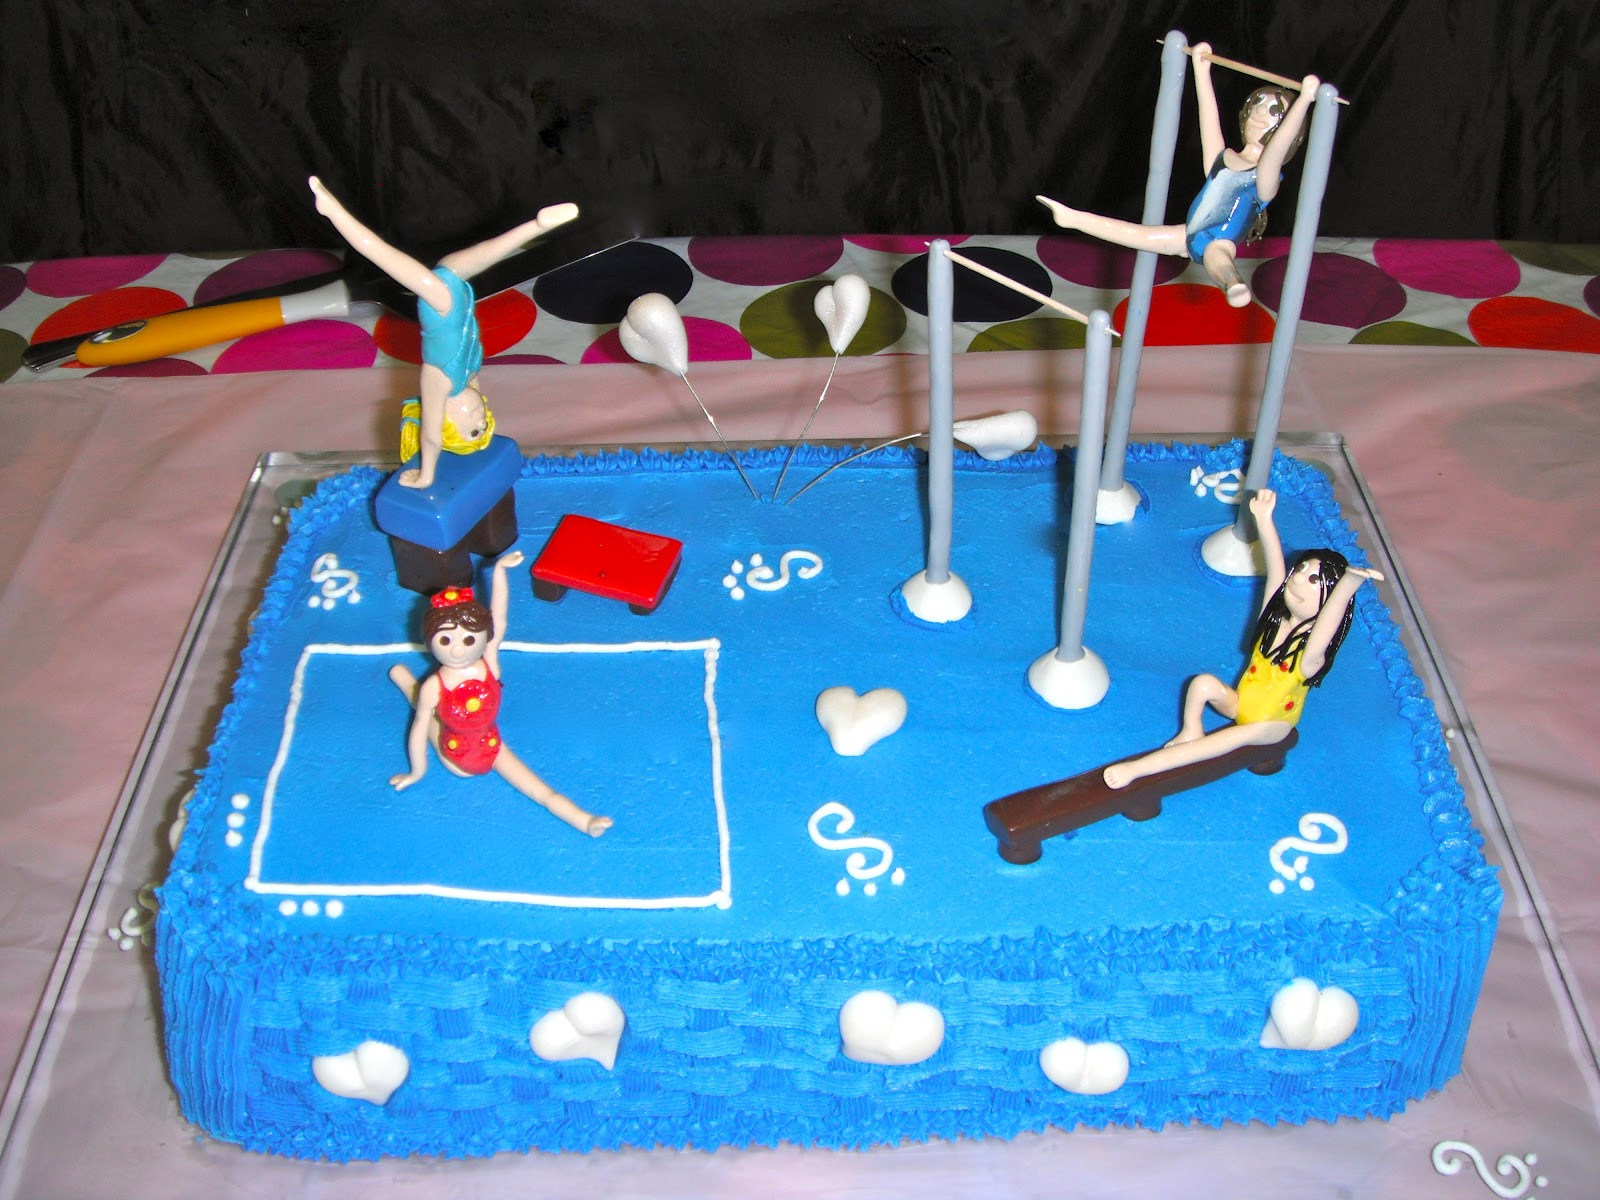 Cake Decorating Ideas Gymnastics : P-ART-Y: How to make a Gymnastics Cake